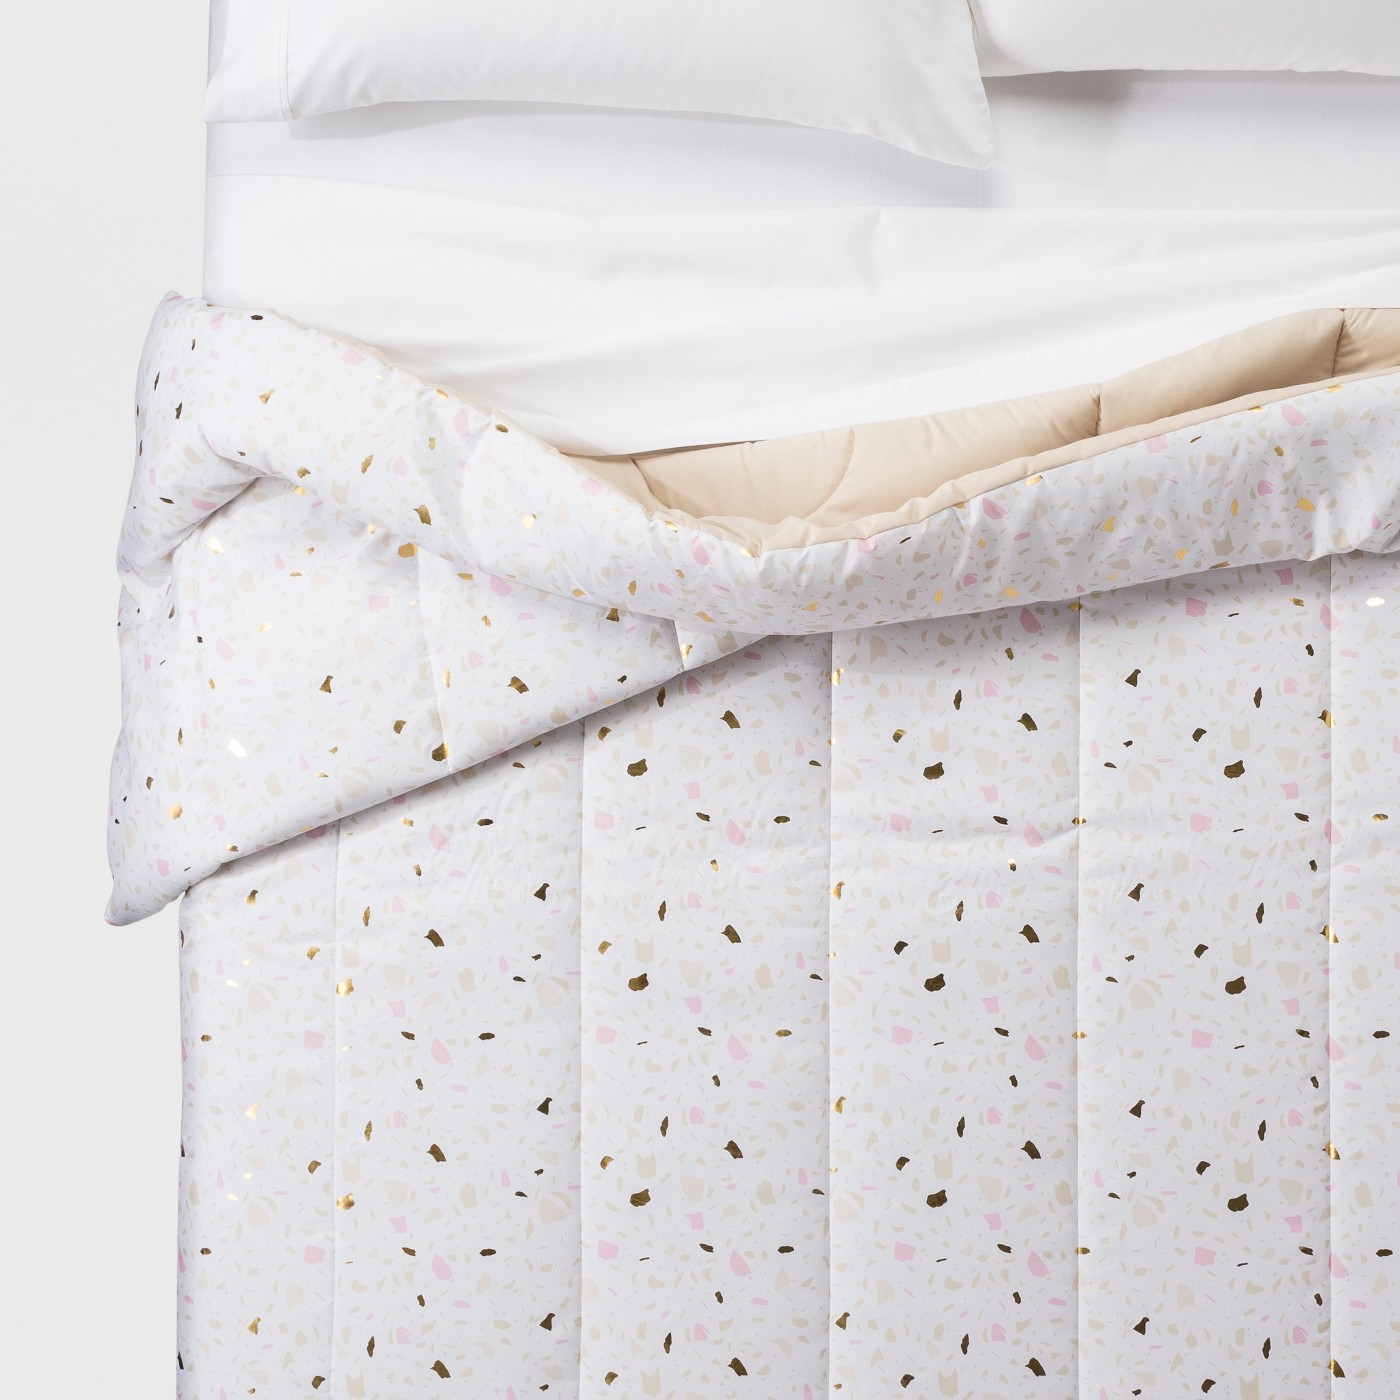 Dorm Room Decor, white and pink speckled comforter on bed